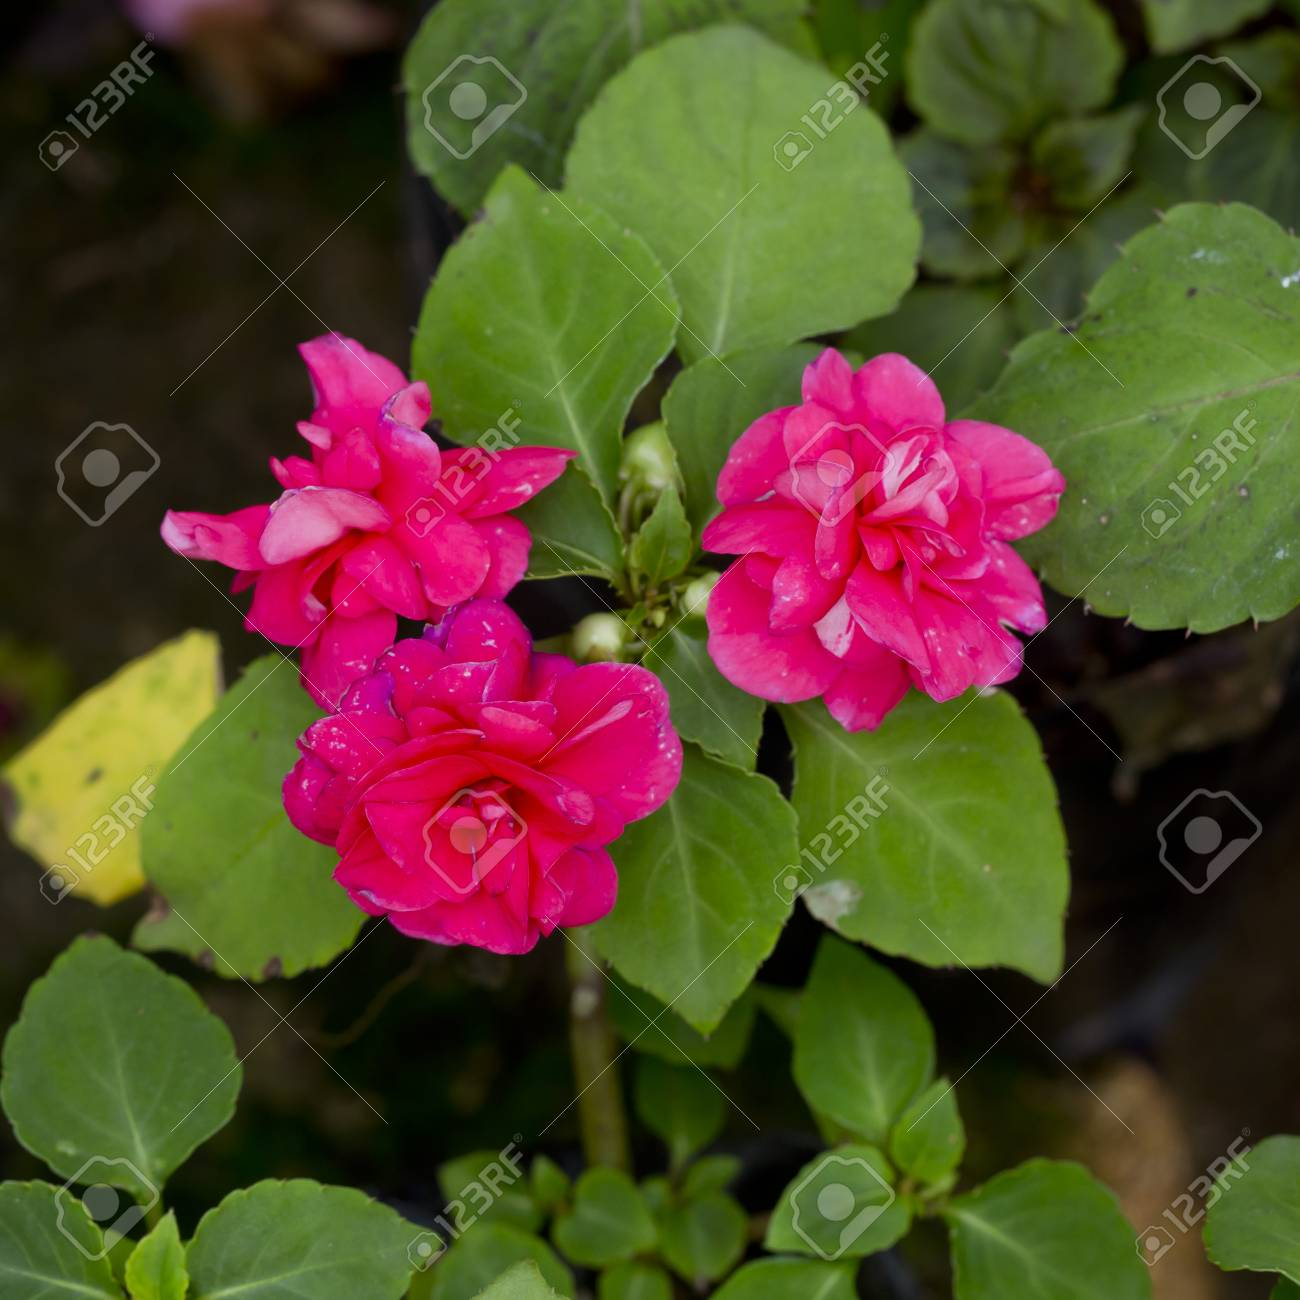 Pink Flower In A Flower Pot Stock Photo Picture And Royalty Free